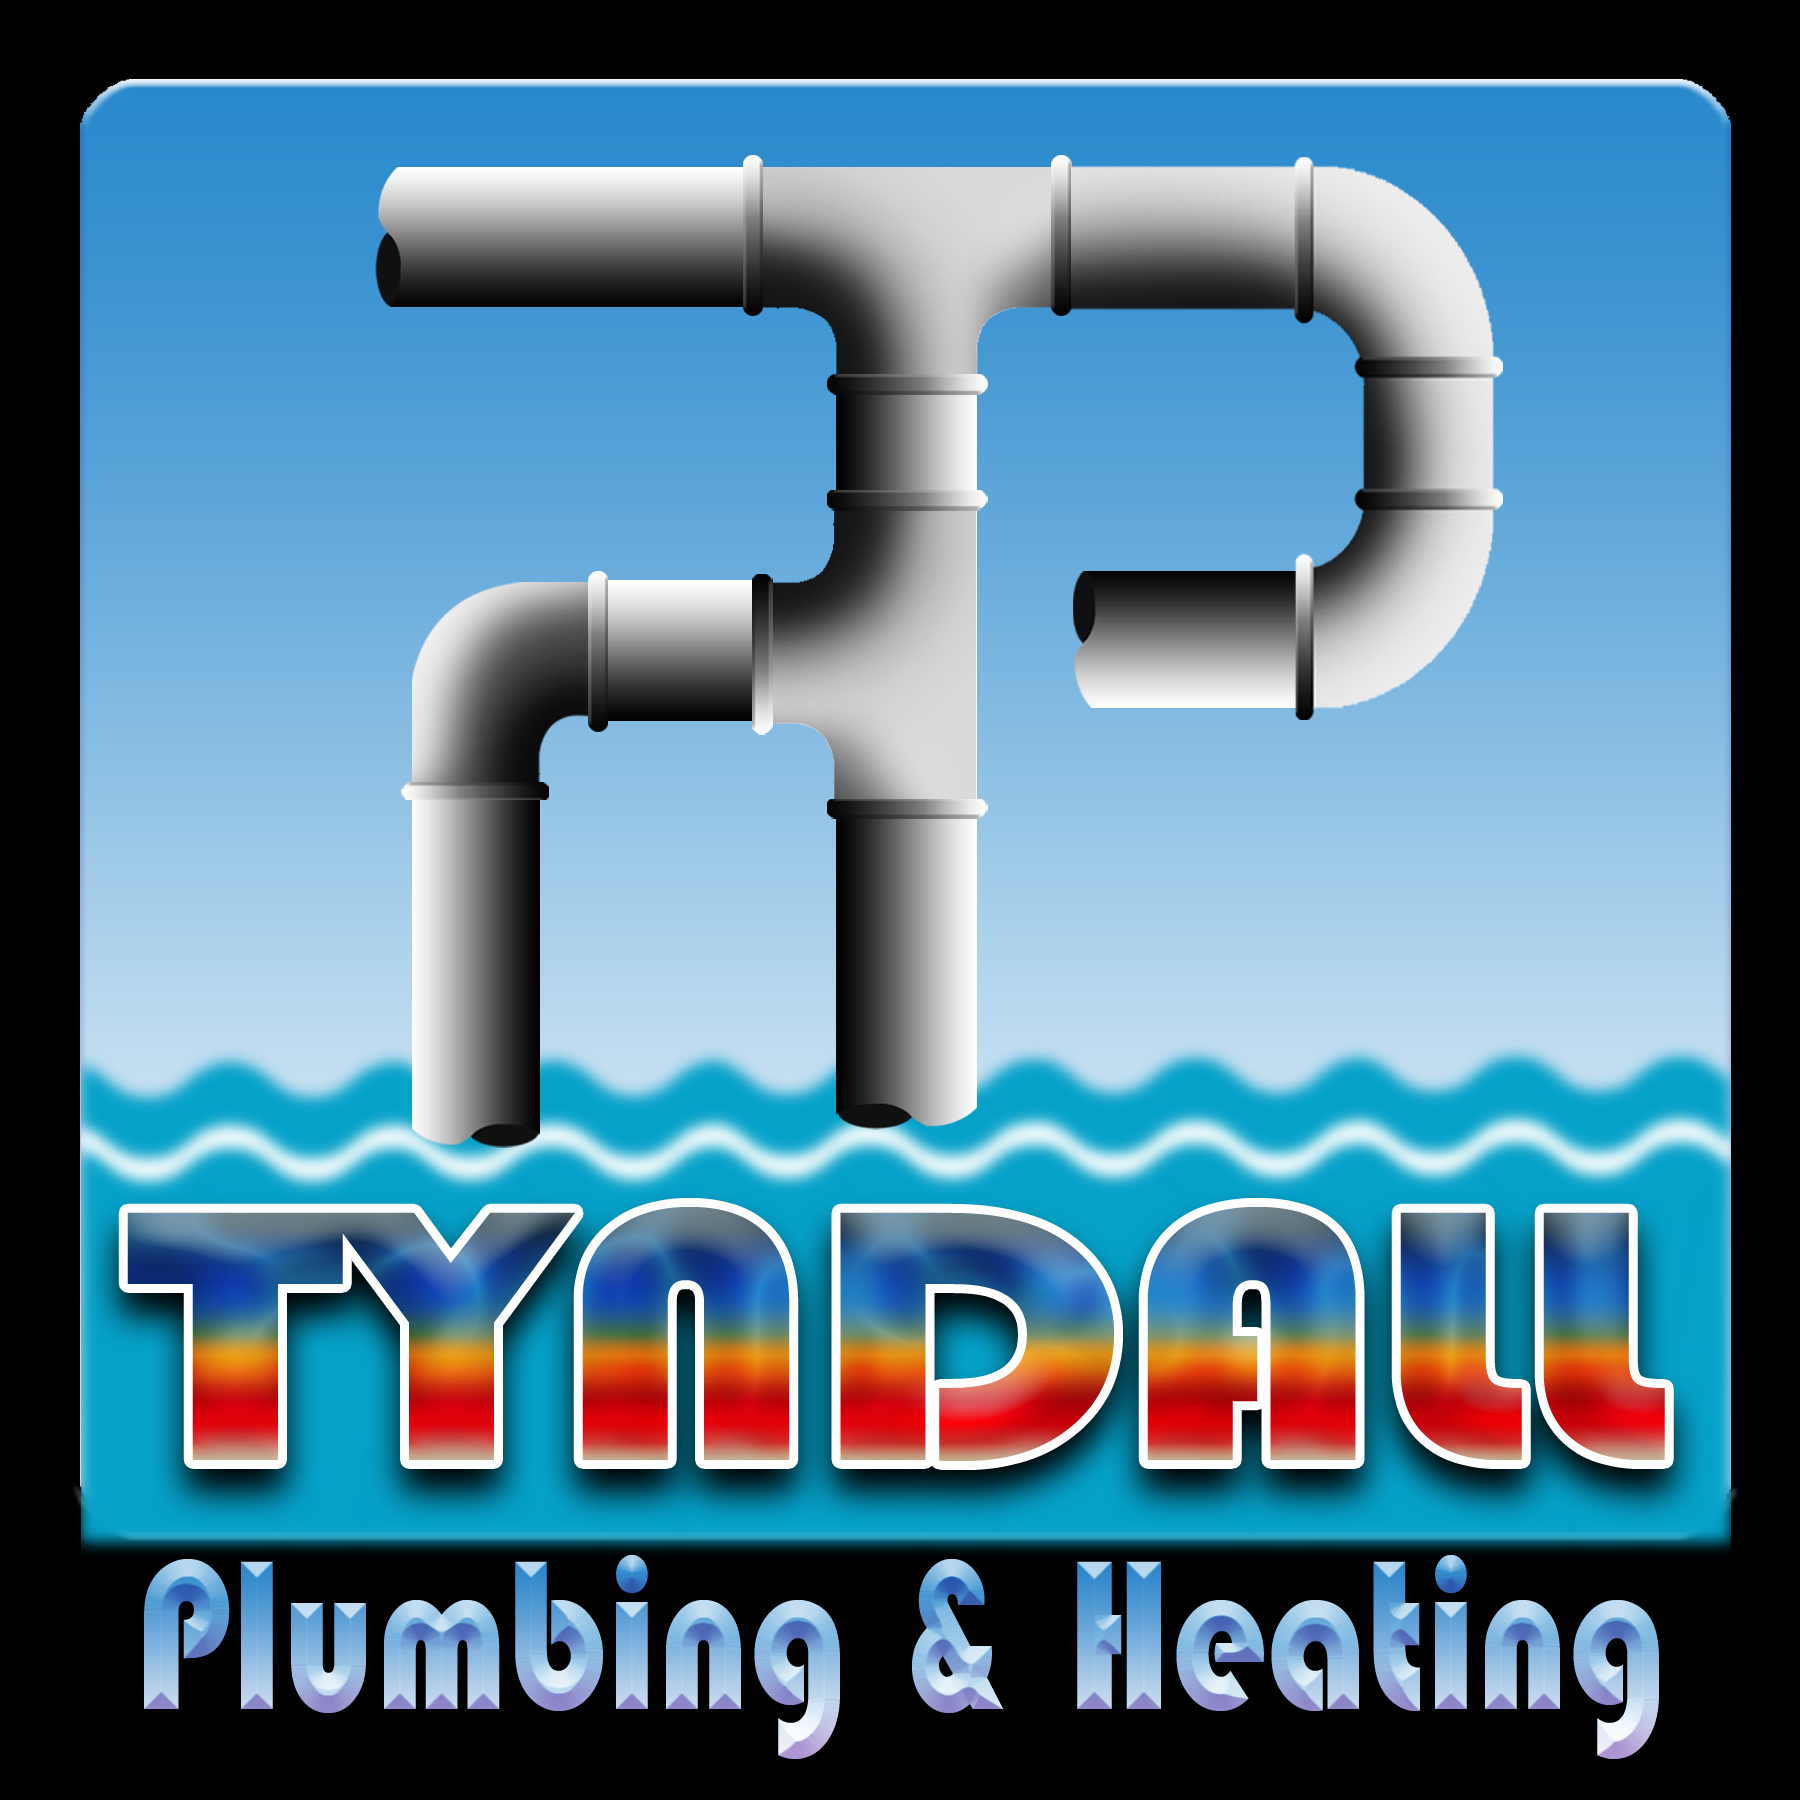 Logo Design by Kitz Malinao - Entry No. 32 in the Logo Design Contest Imaginative Logo Design for Tyndall Plumbing & Heating.